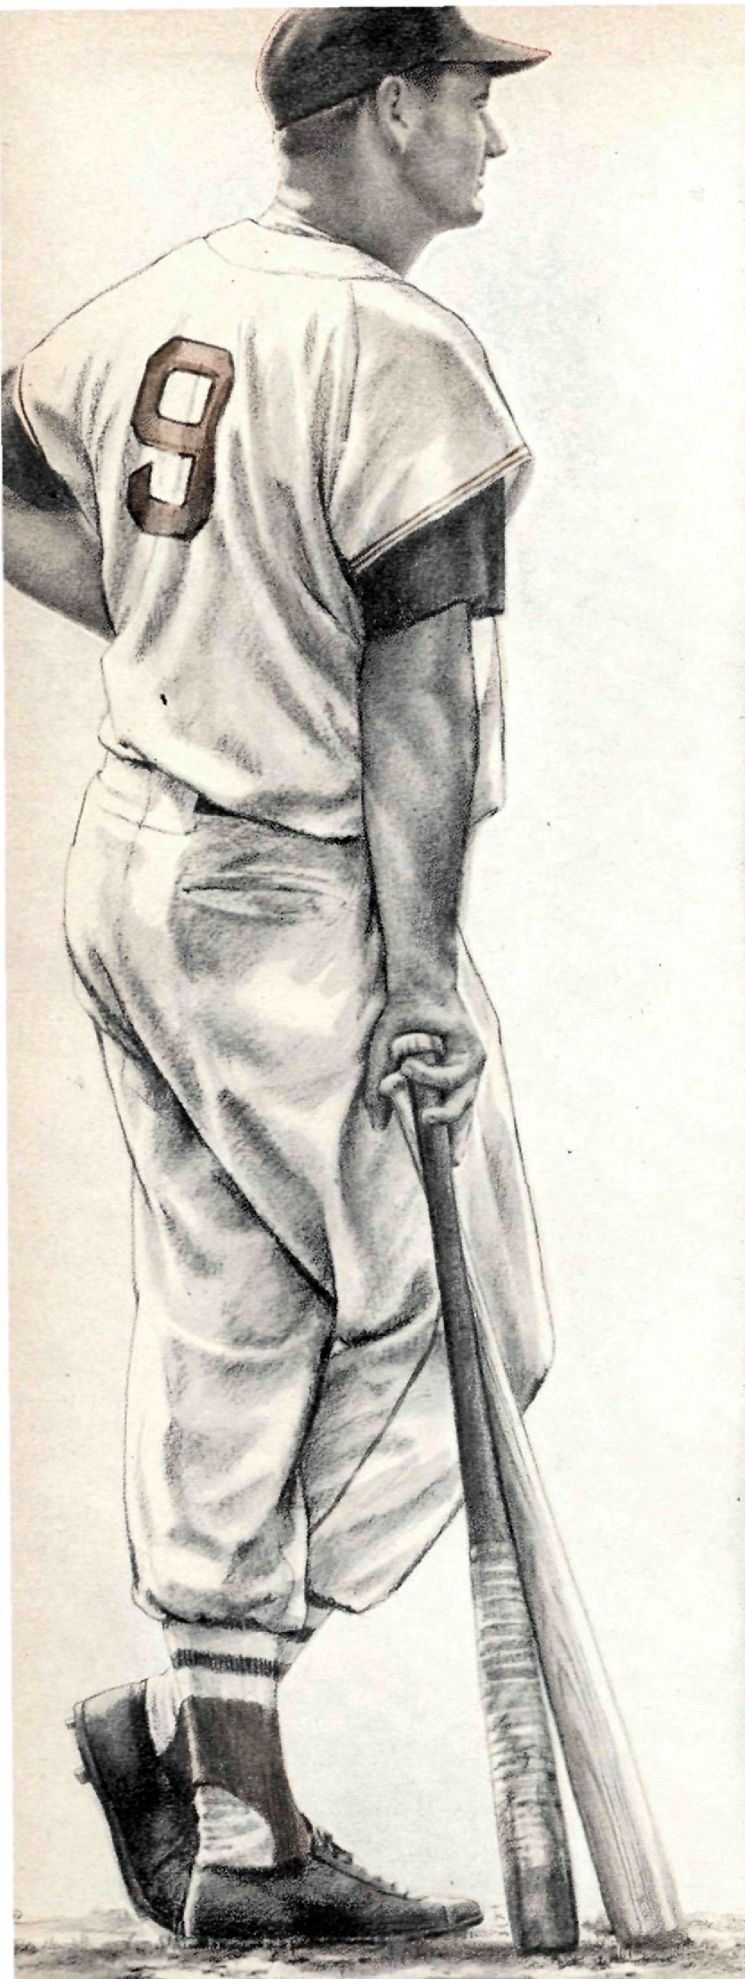 robert riger illustration of red sox slugger ted williams